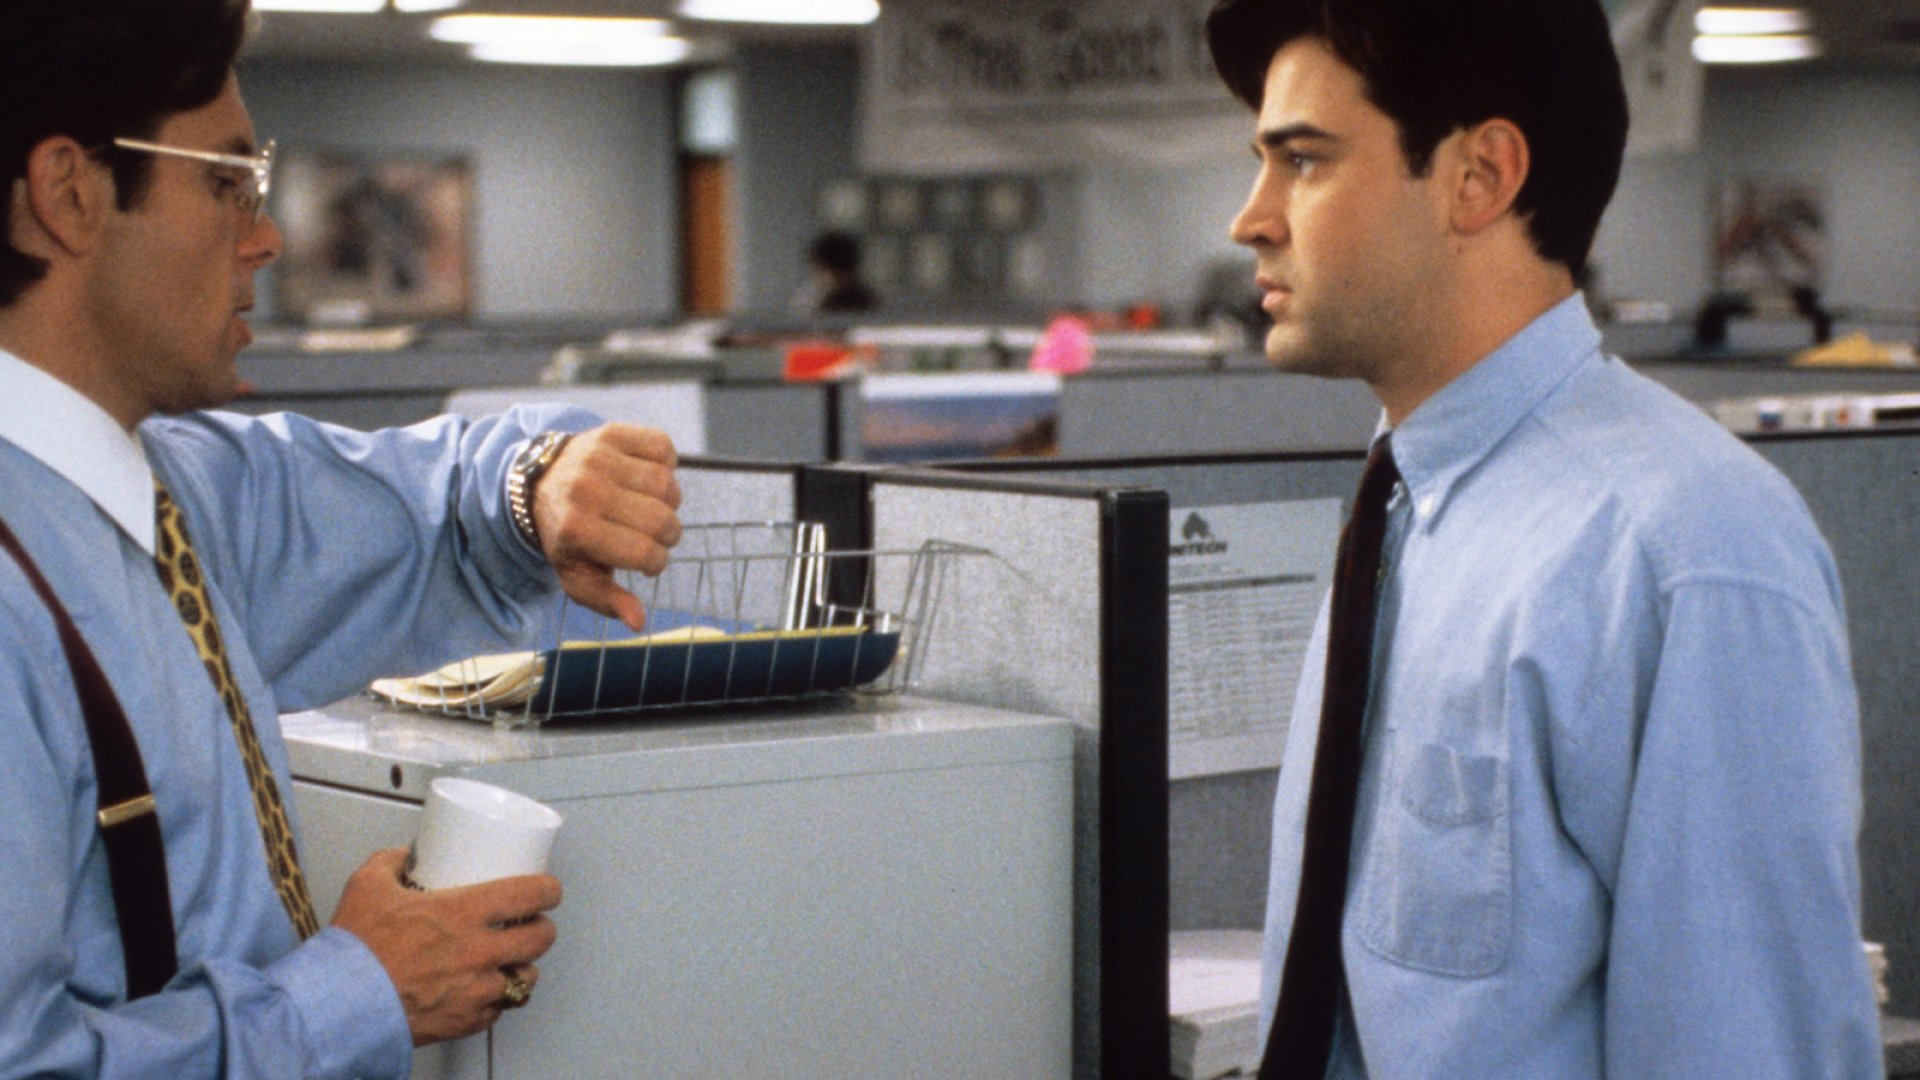 5 Ways to Make Your Employees Hate You